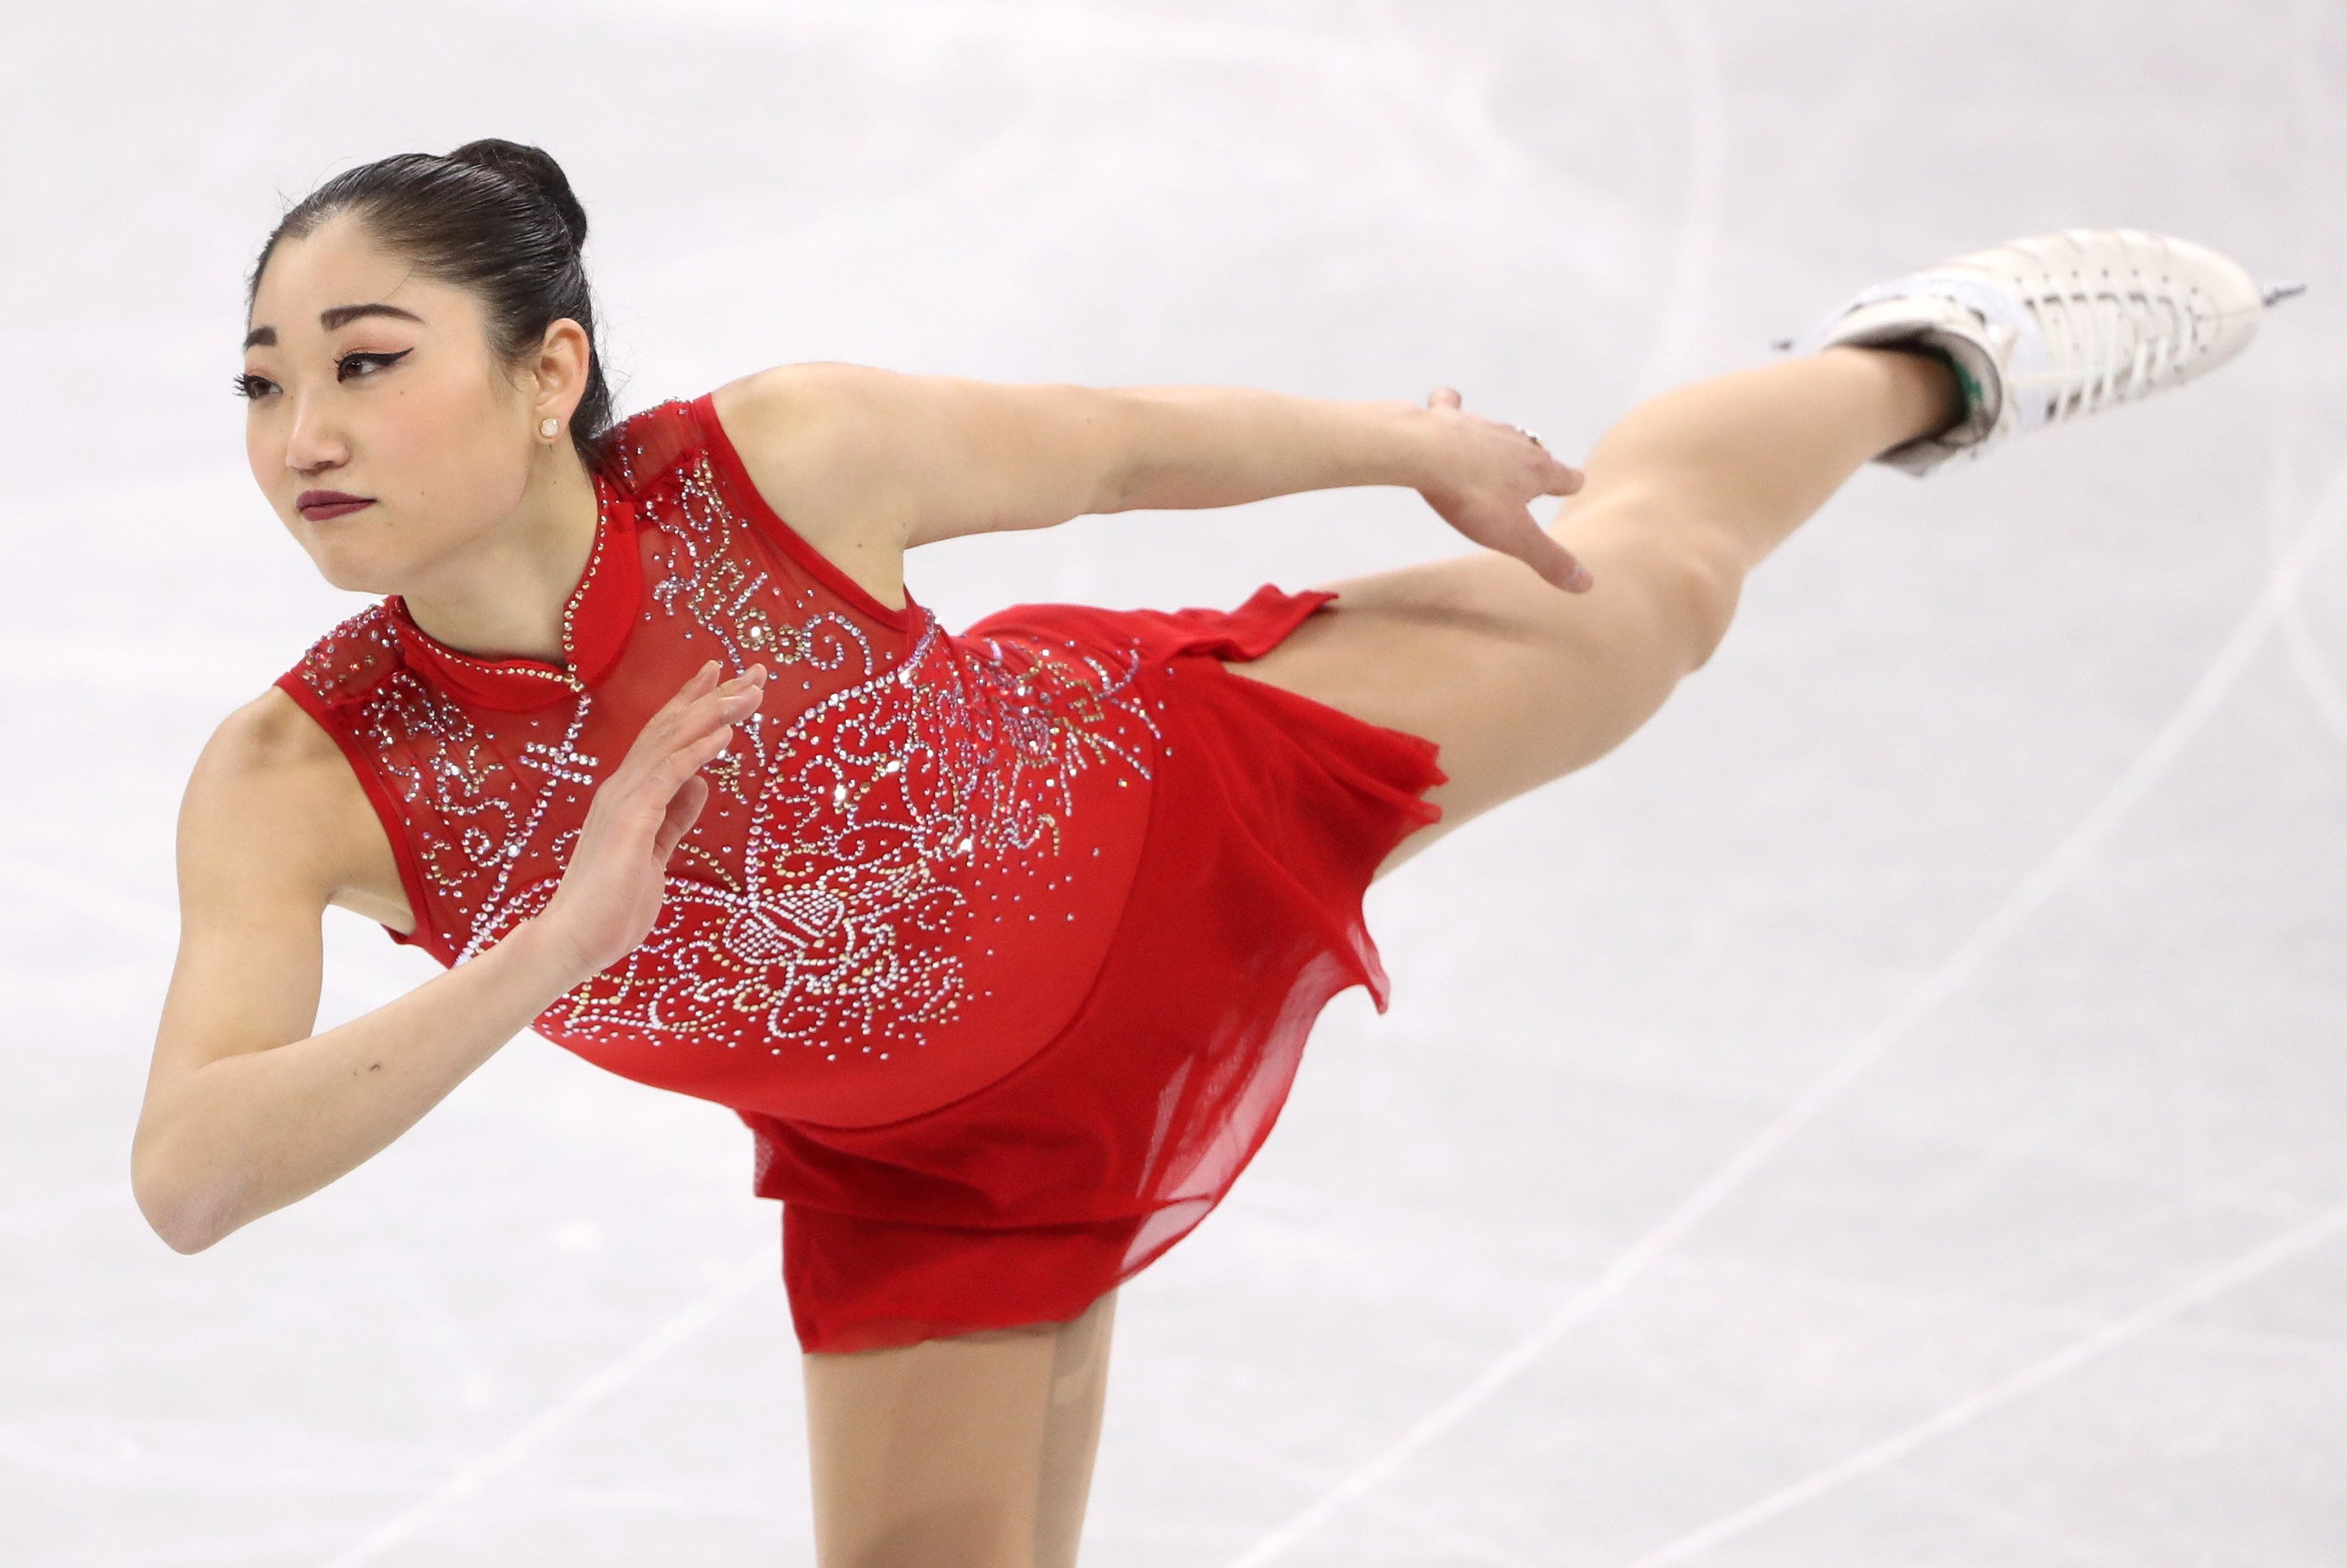 Valery Sharifulin via Getty Images The 24-year-old'scredits her parents drive as her inspiration